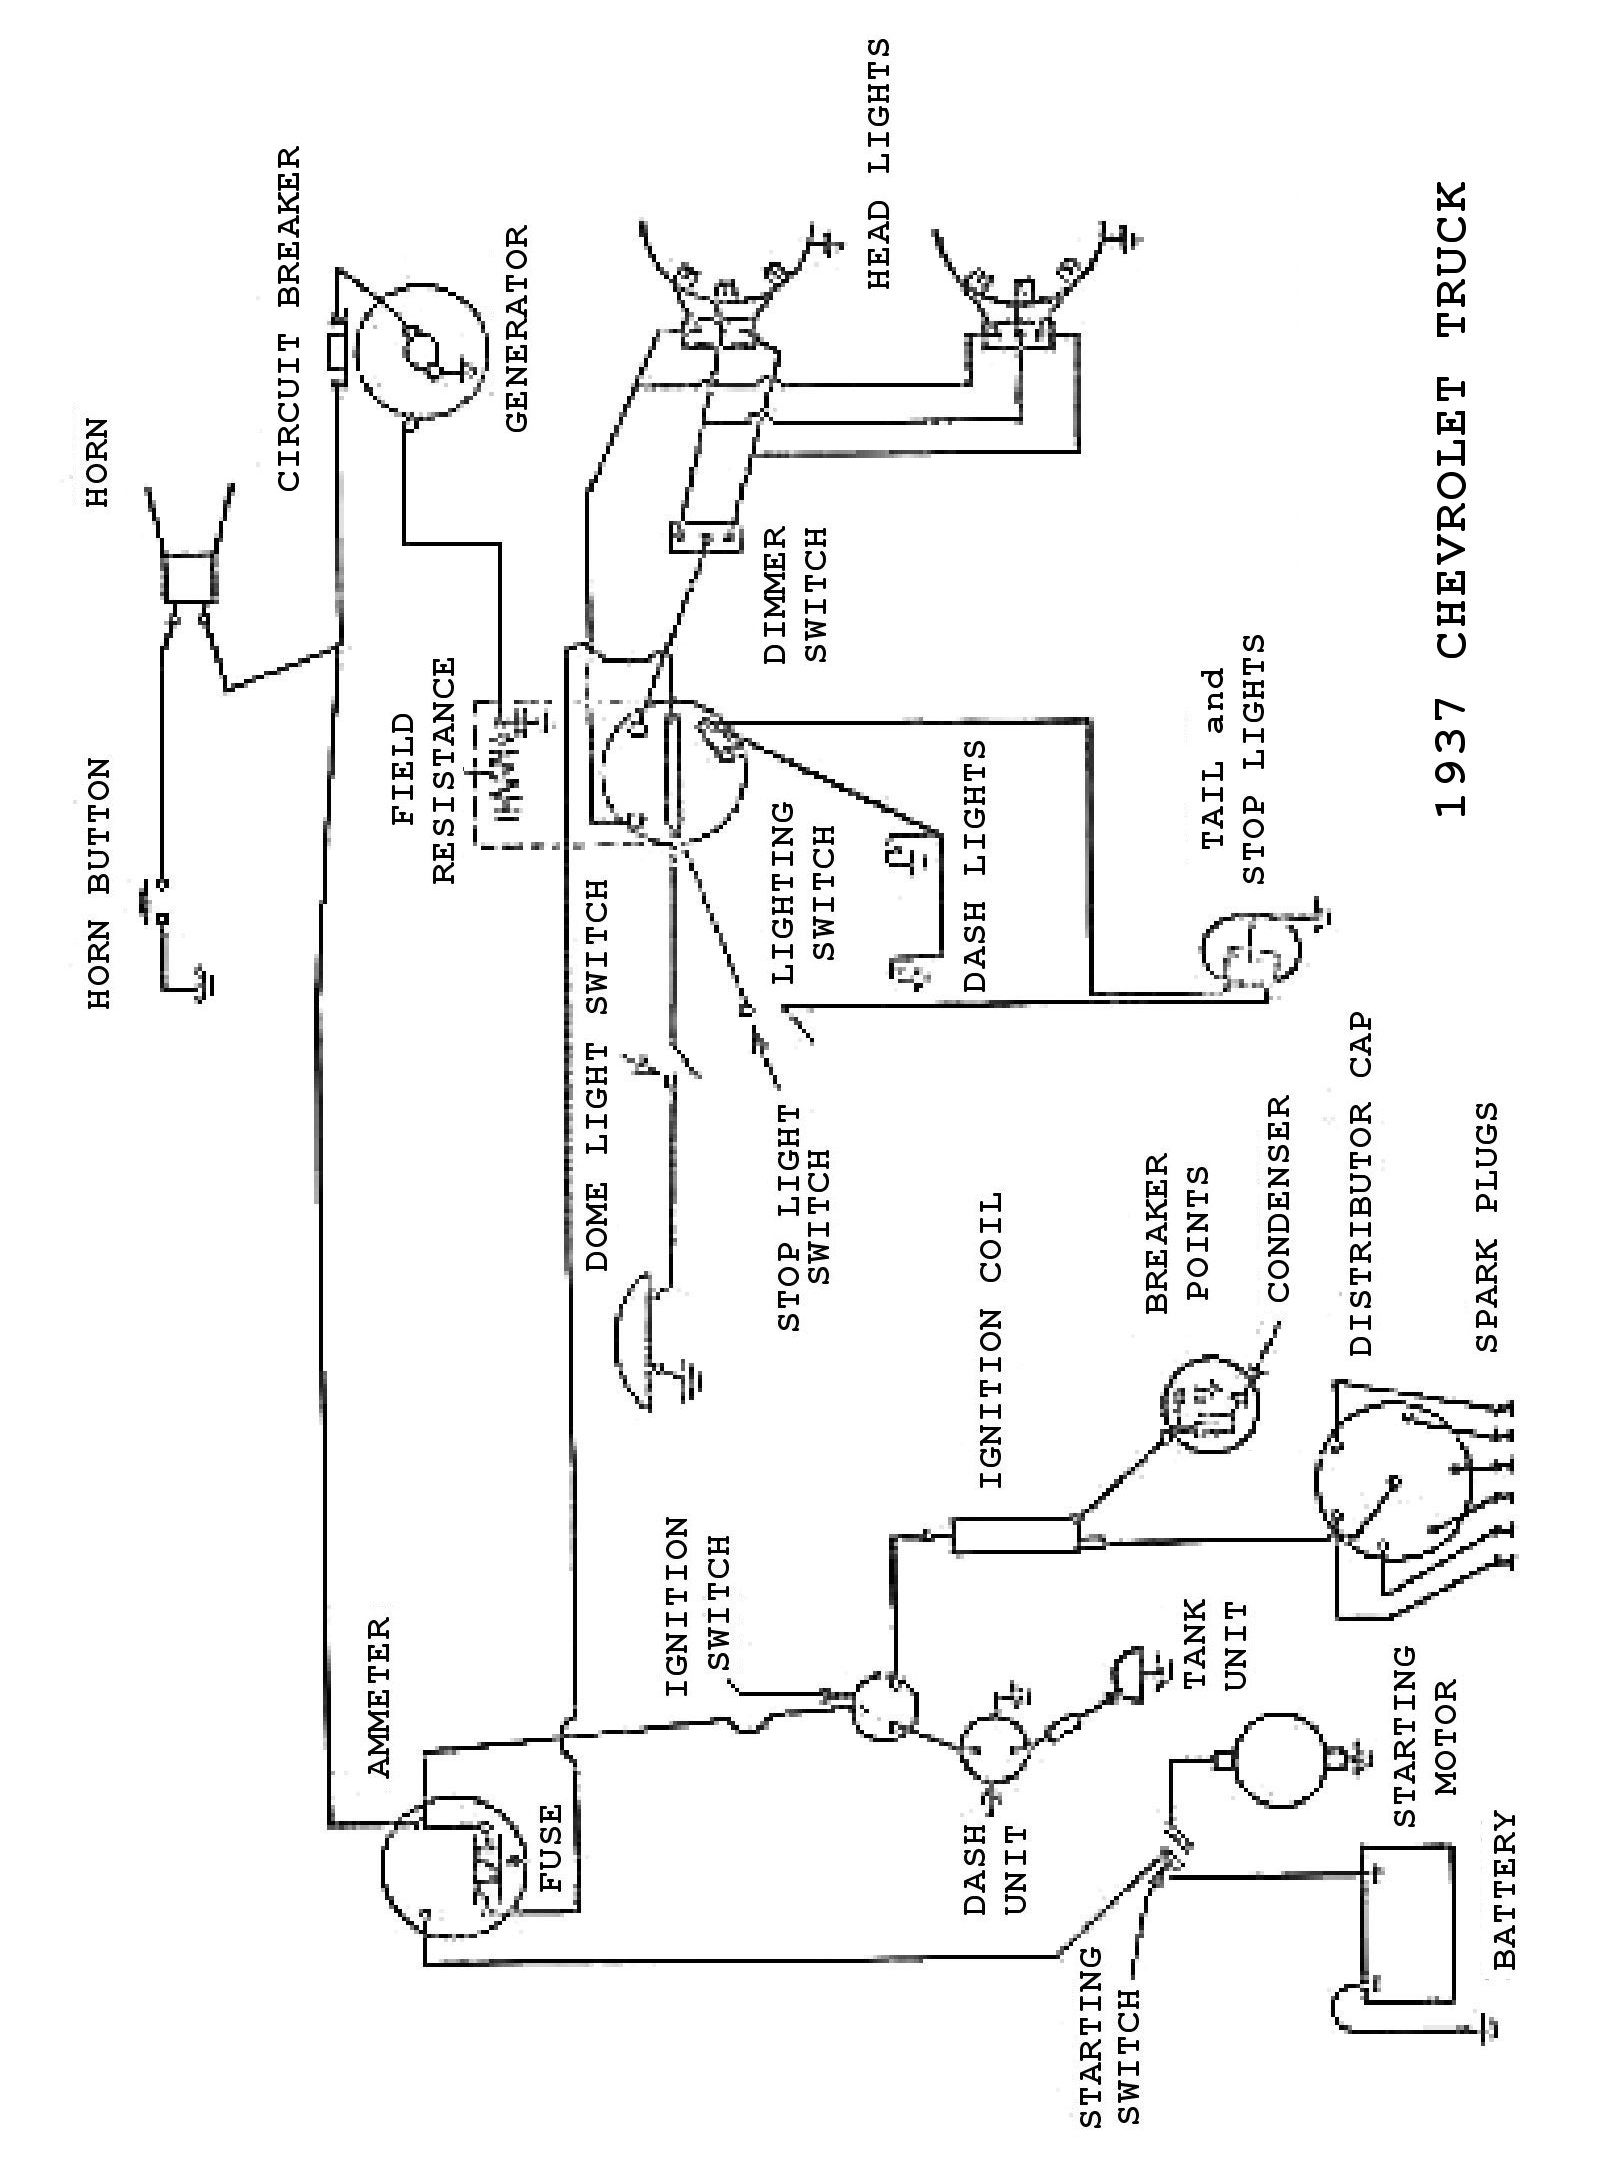 wiring diagram for 1950 gmc just another wiring diagram blog • wiring diagram for 1950 gmc simple wiring diagrams rh 9 13 5 zahnaerztin carstens de 1959 gmc wiring diagram 1950 chevy wiring diagram